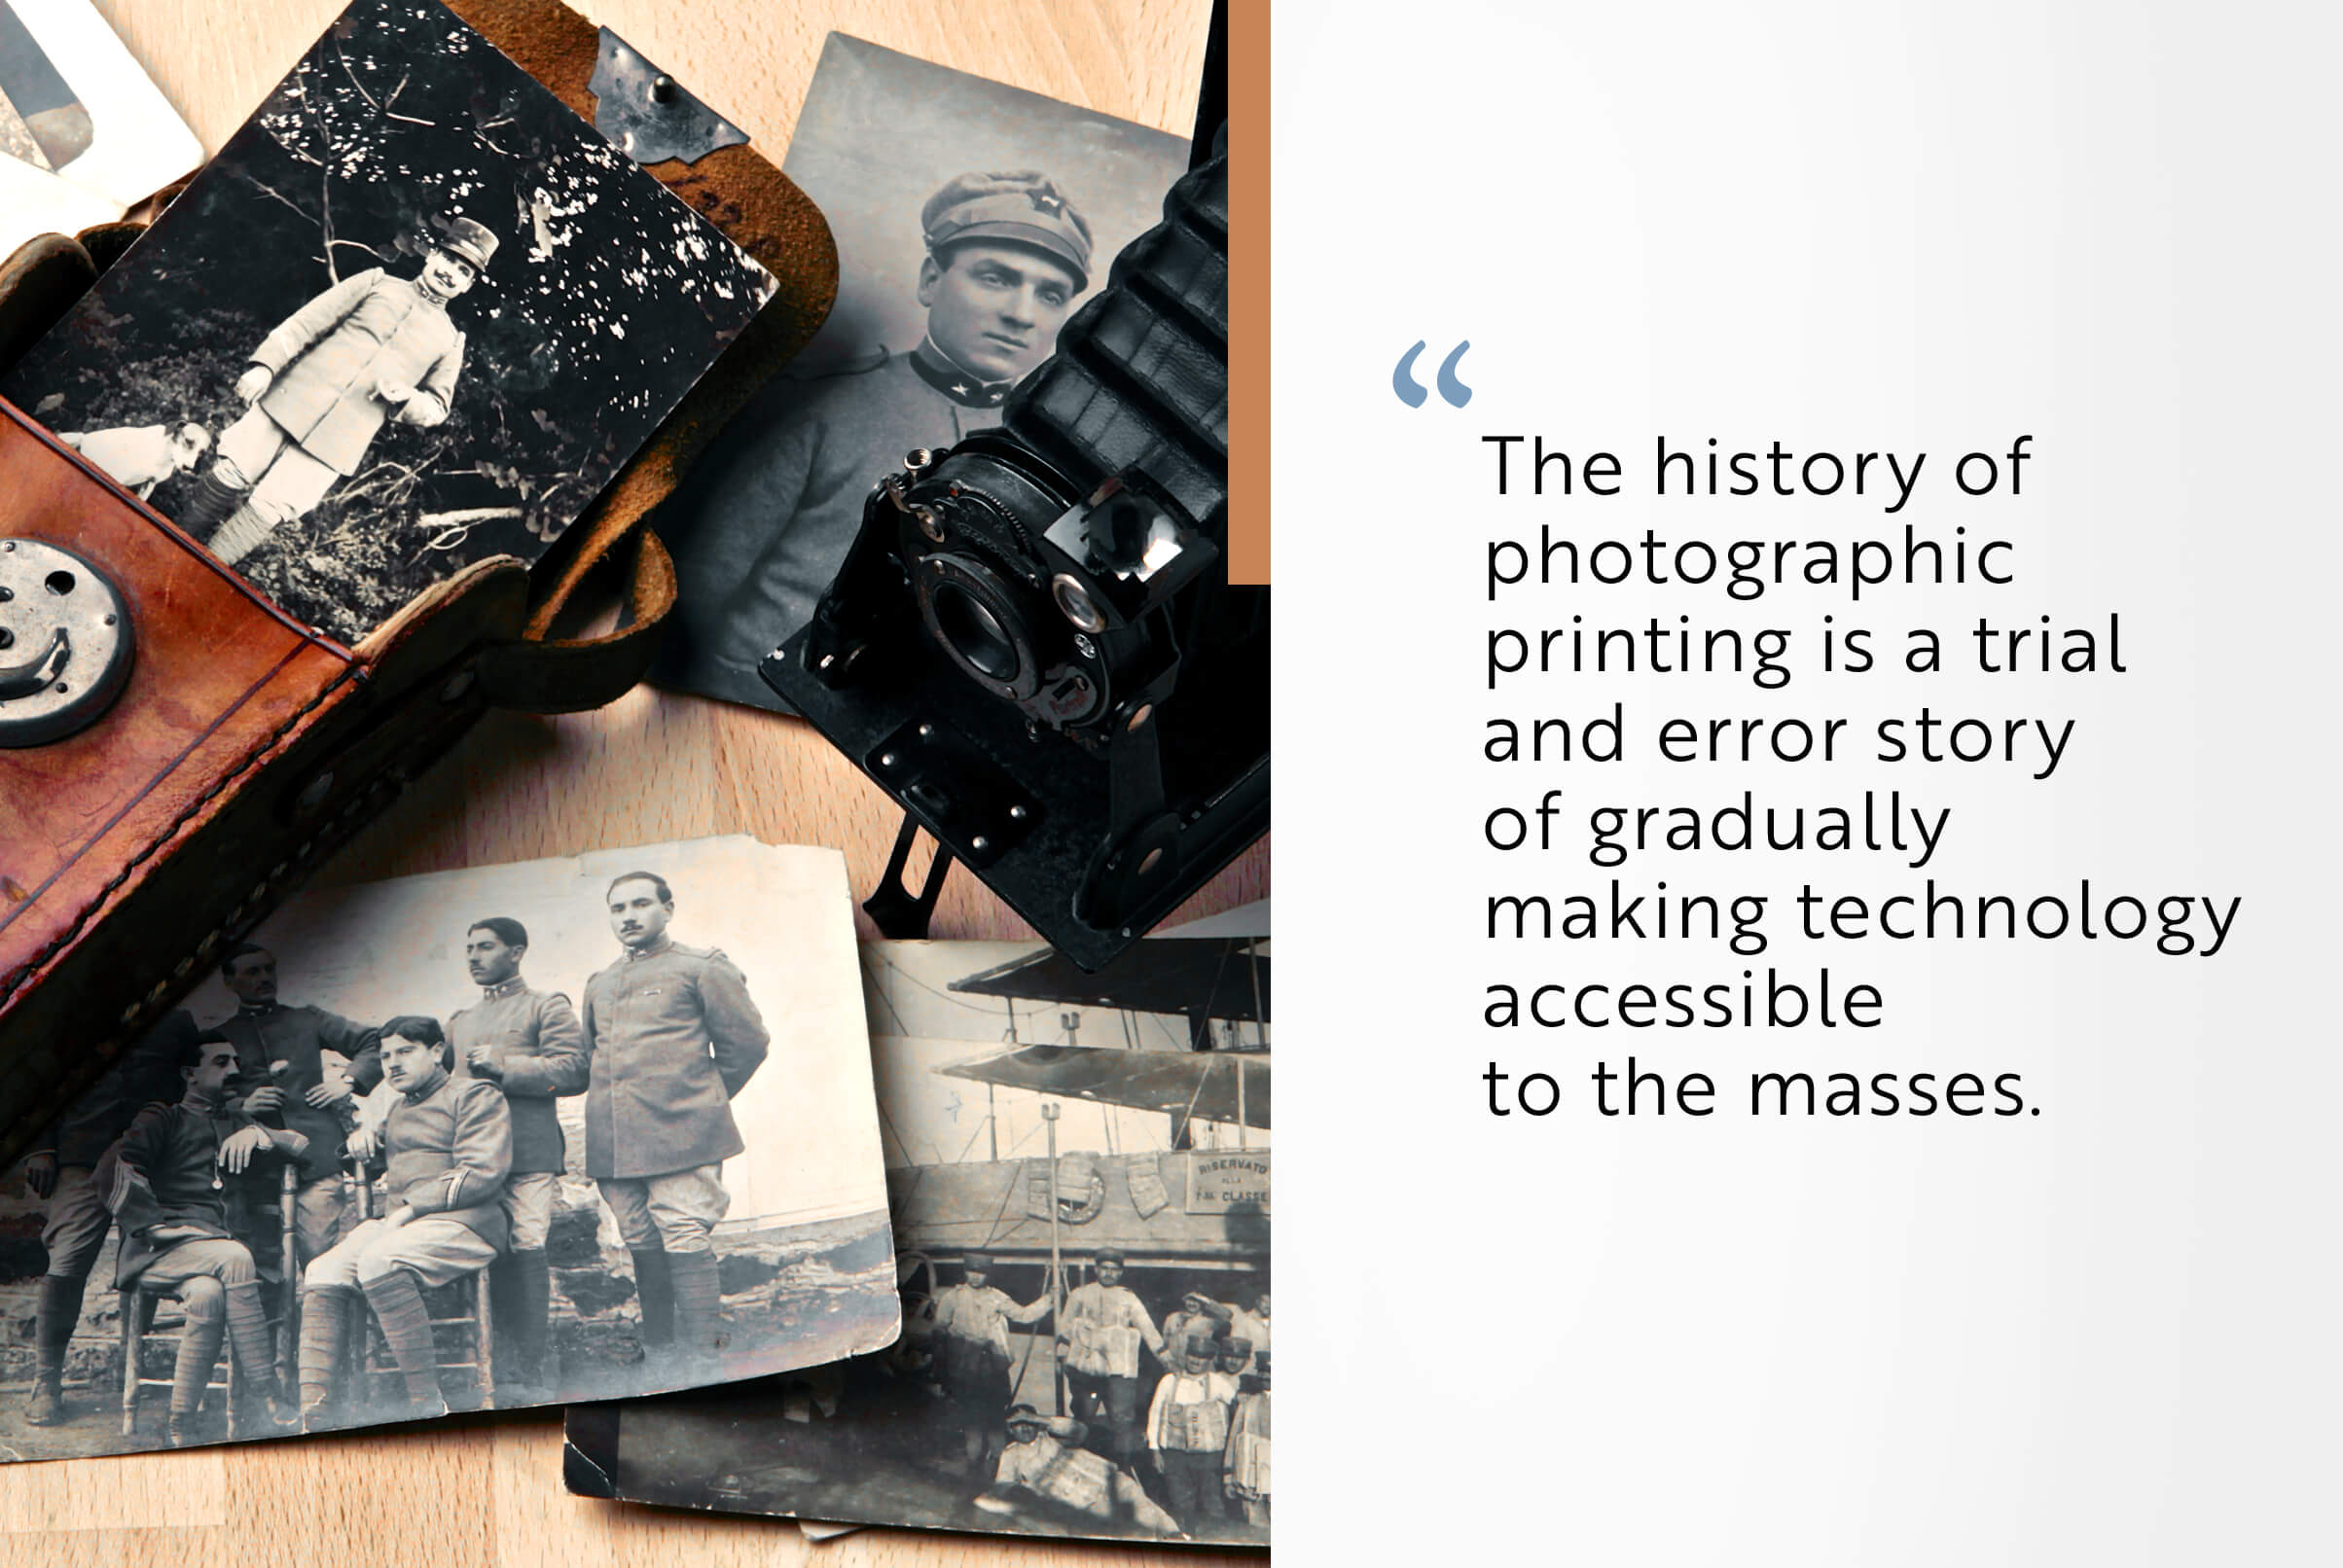 History of photographic printing